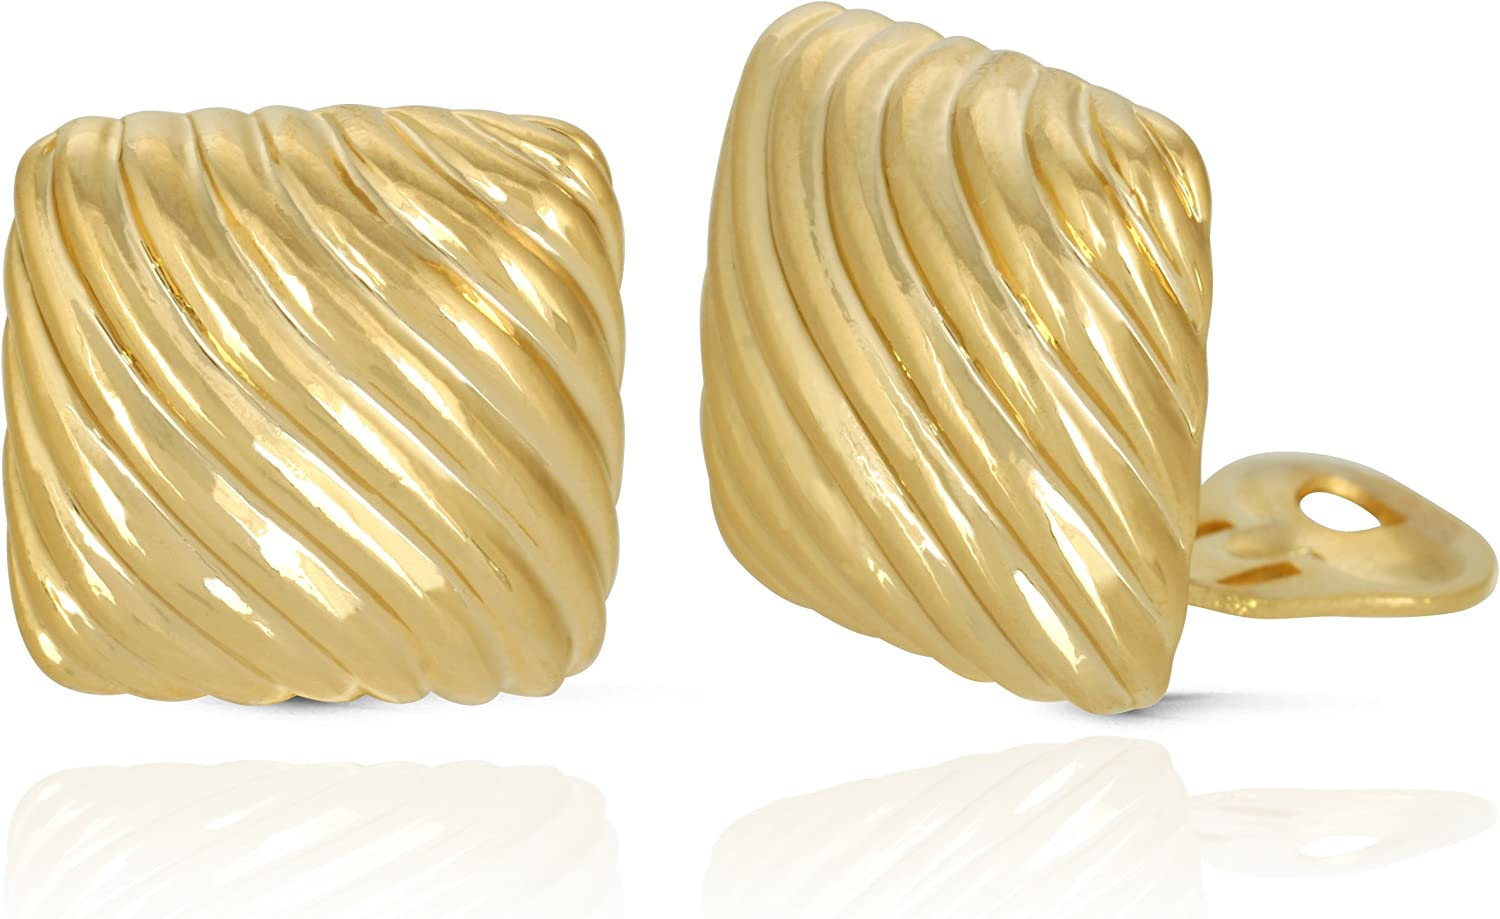 JanKuo Jewelry Gold Plated Square Wave Shining Polished Clip On Earrings